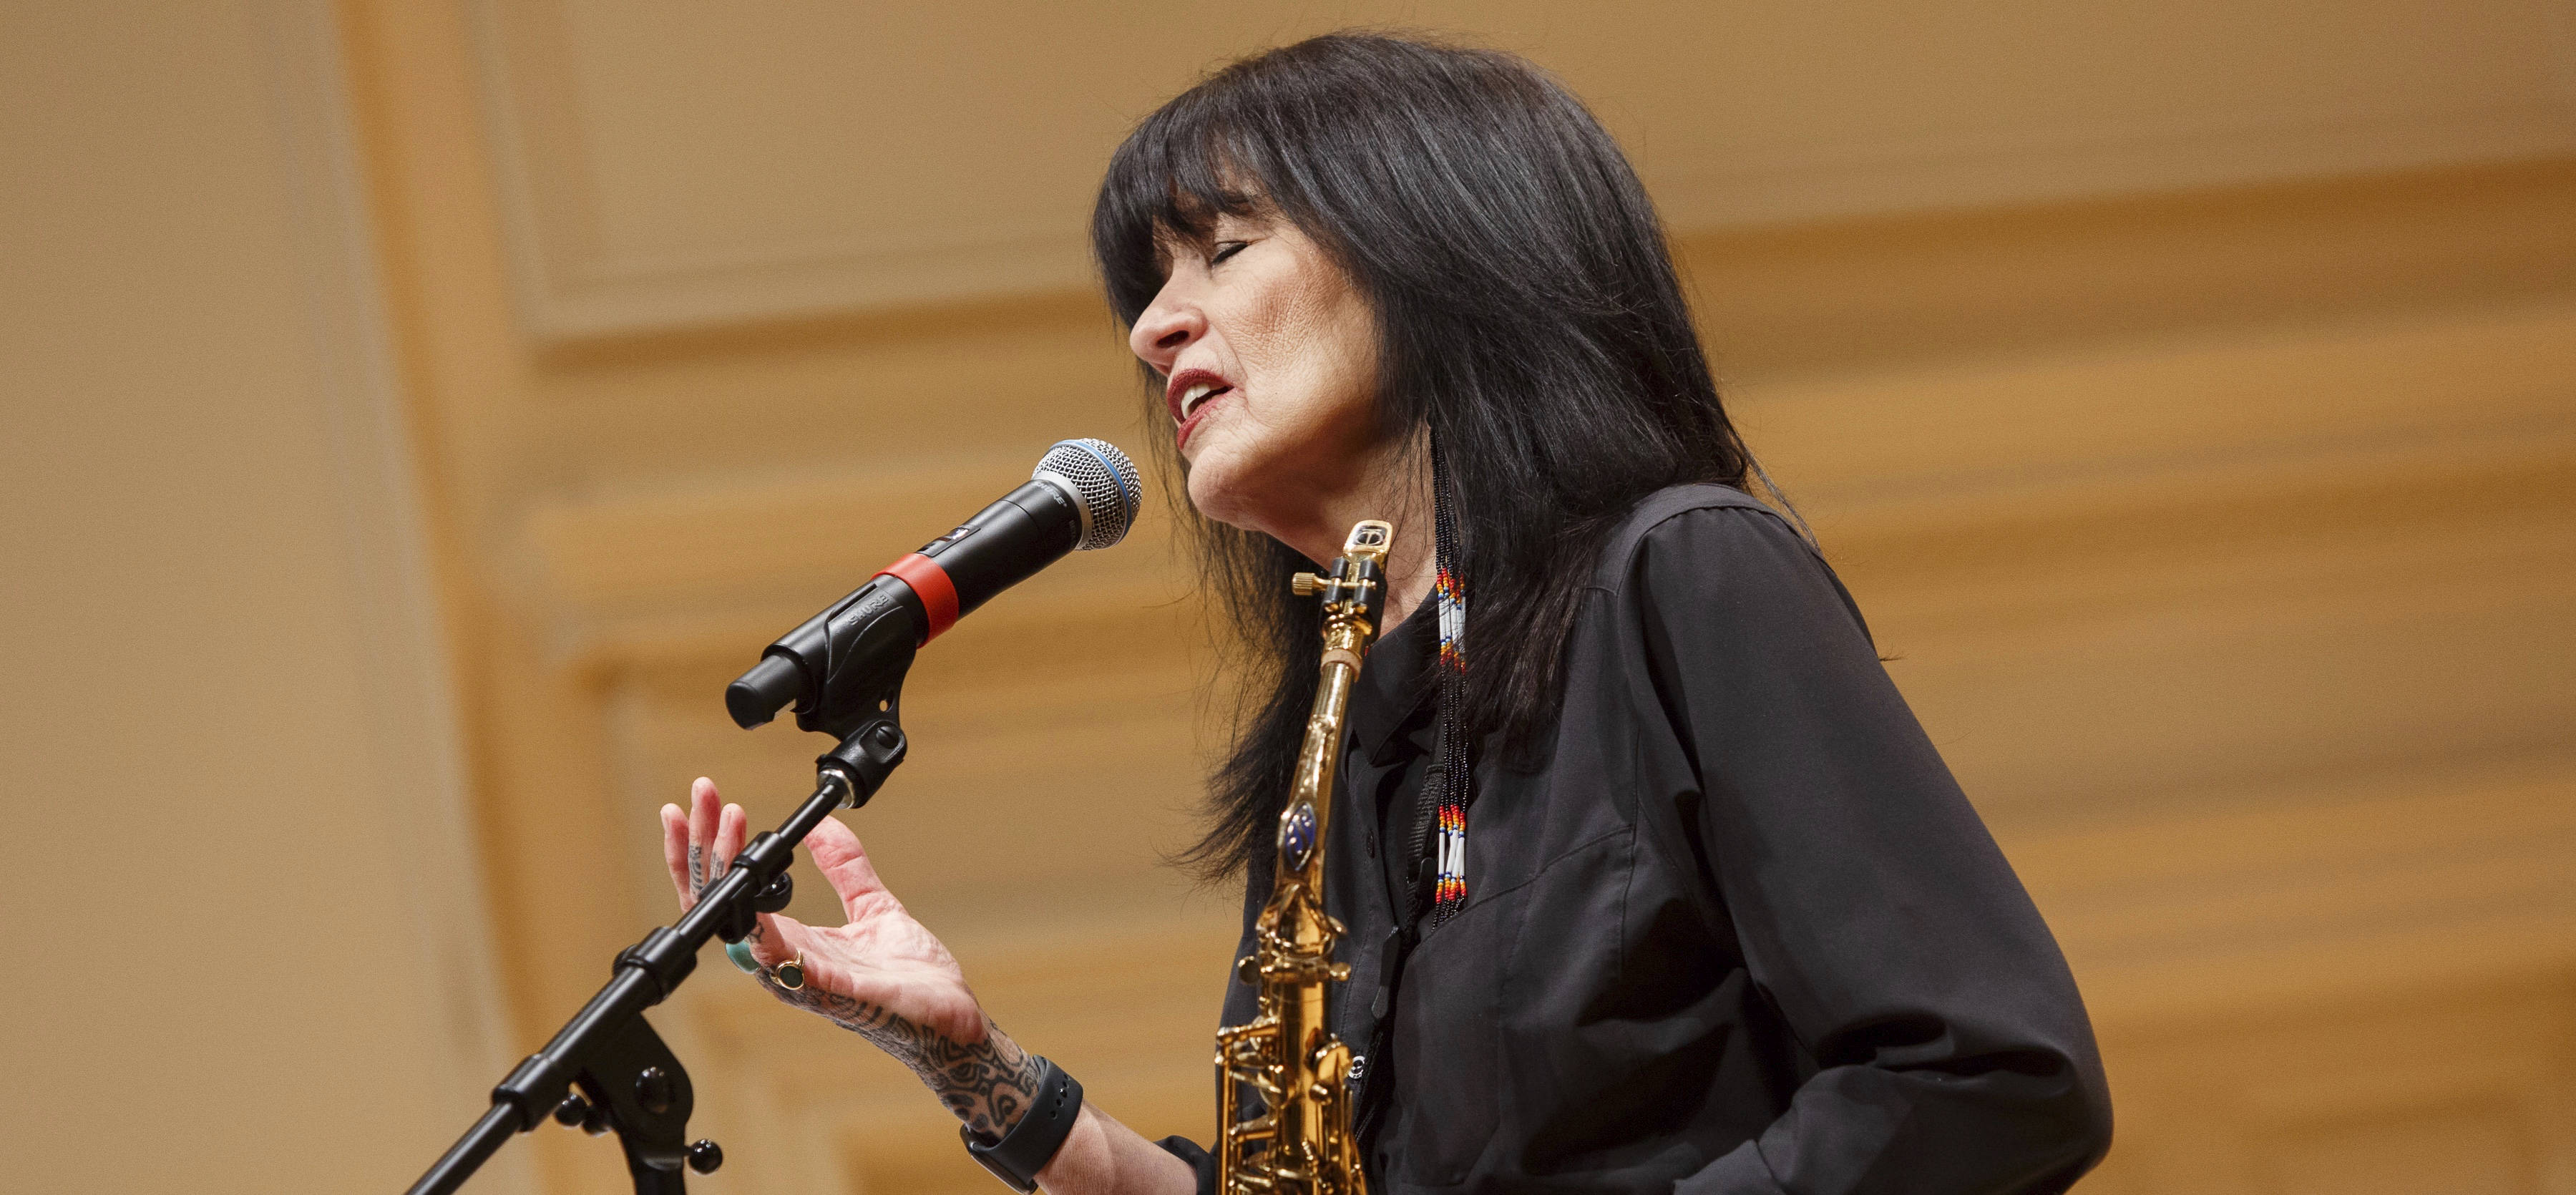 U.S. Poet Laureate Joy Harjo performs with her band at the Library of Congress, Sept. 19, 2019. (Shawn Miller/Library of Congress)